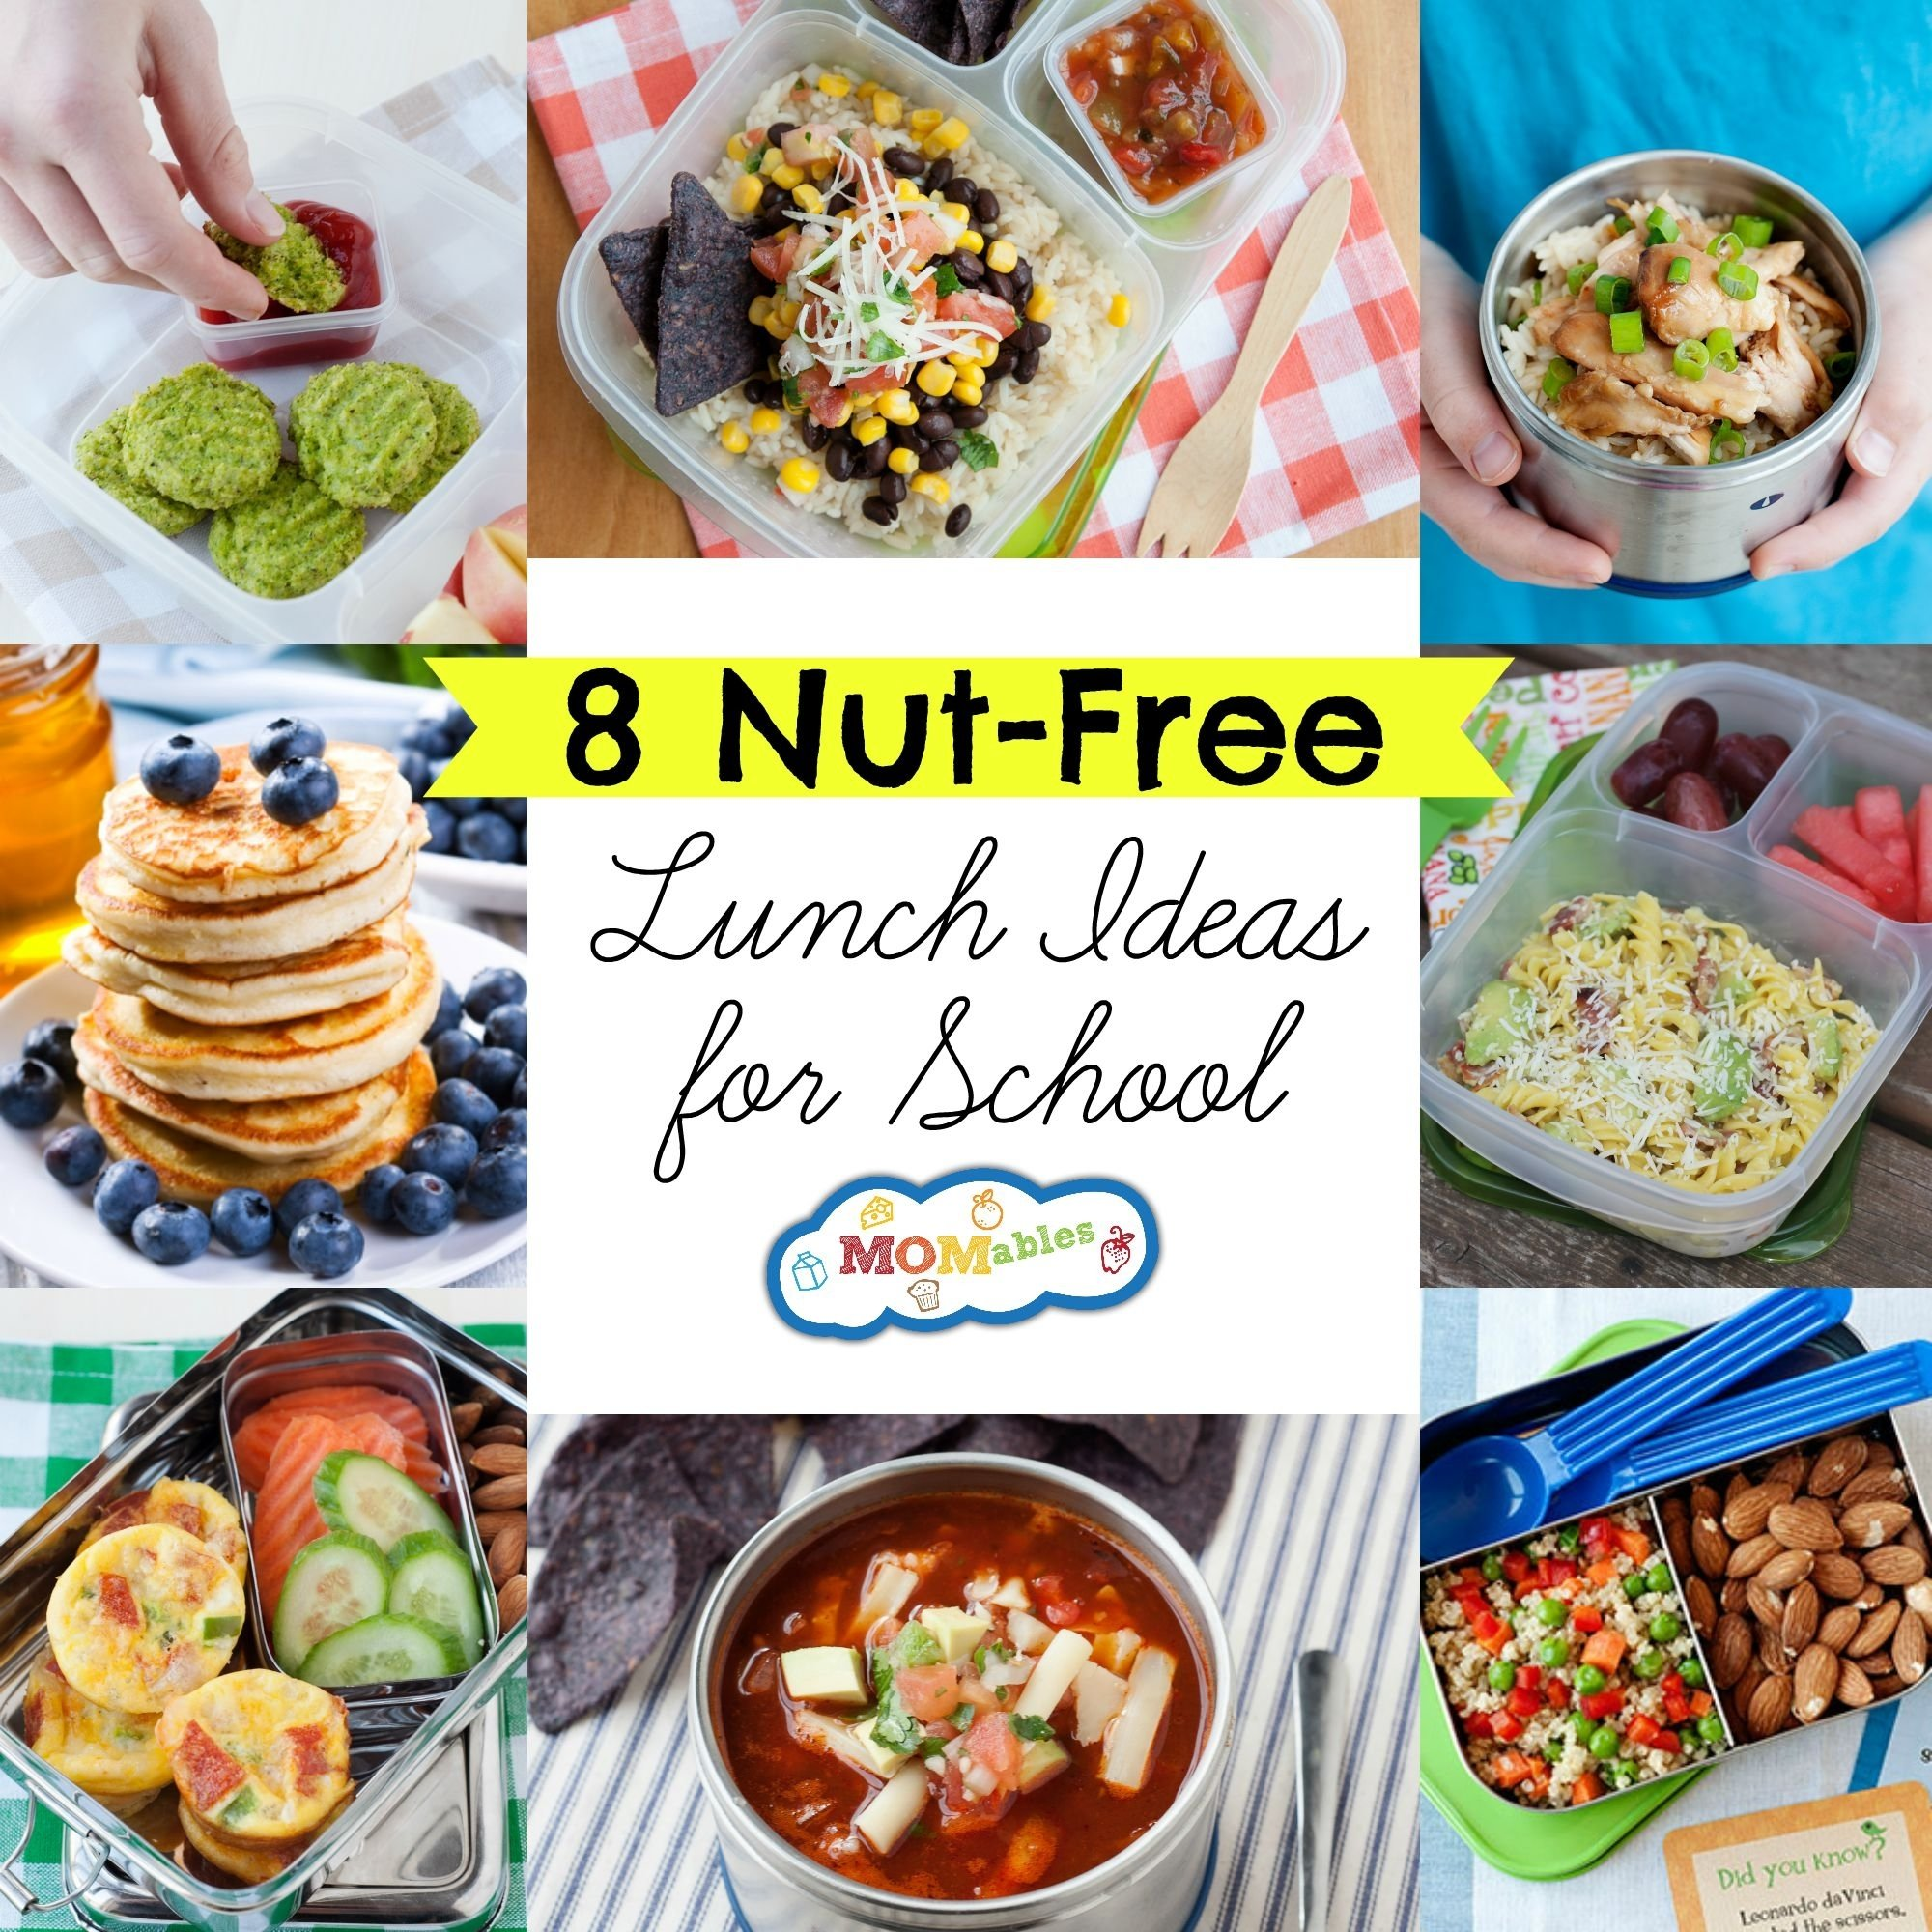 10 Ideal School Lunch Ideas For Picky Kids 8 nut free lunch ideas for school momables 1 2020